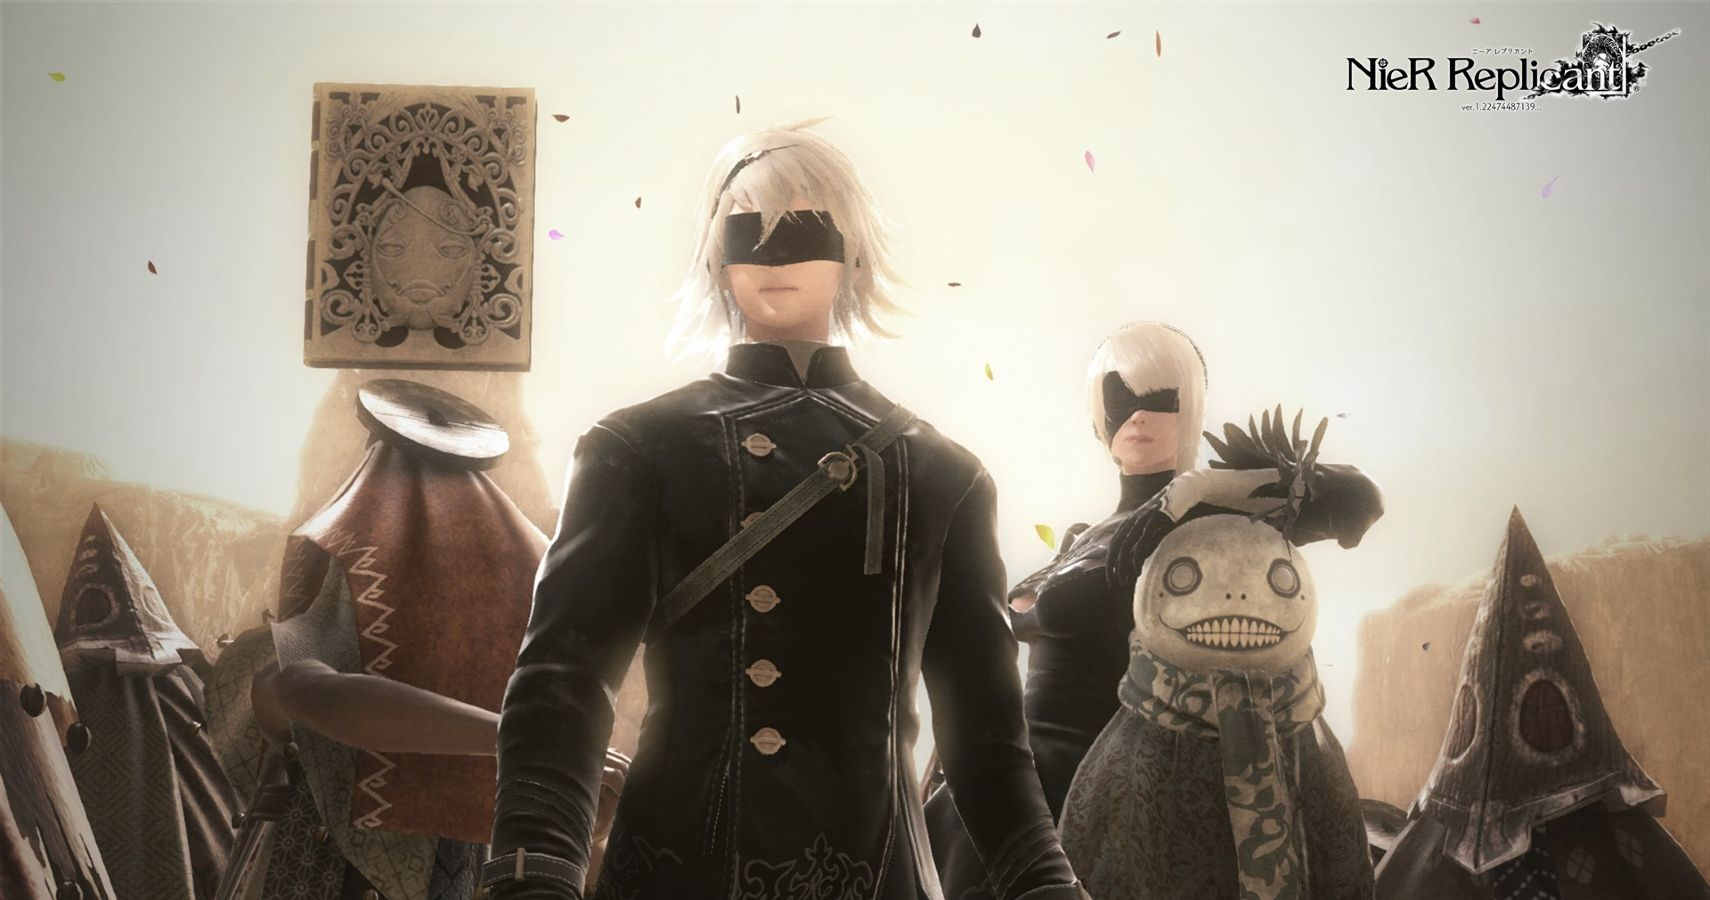 """Nier Replicant DLC """"4 Yorha"""" Leaked On Microsoft Store, Includes Costumes And Weapons From Automata"""